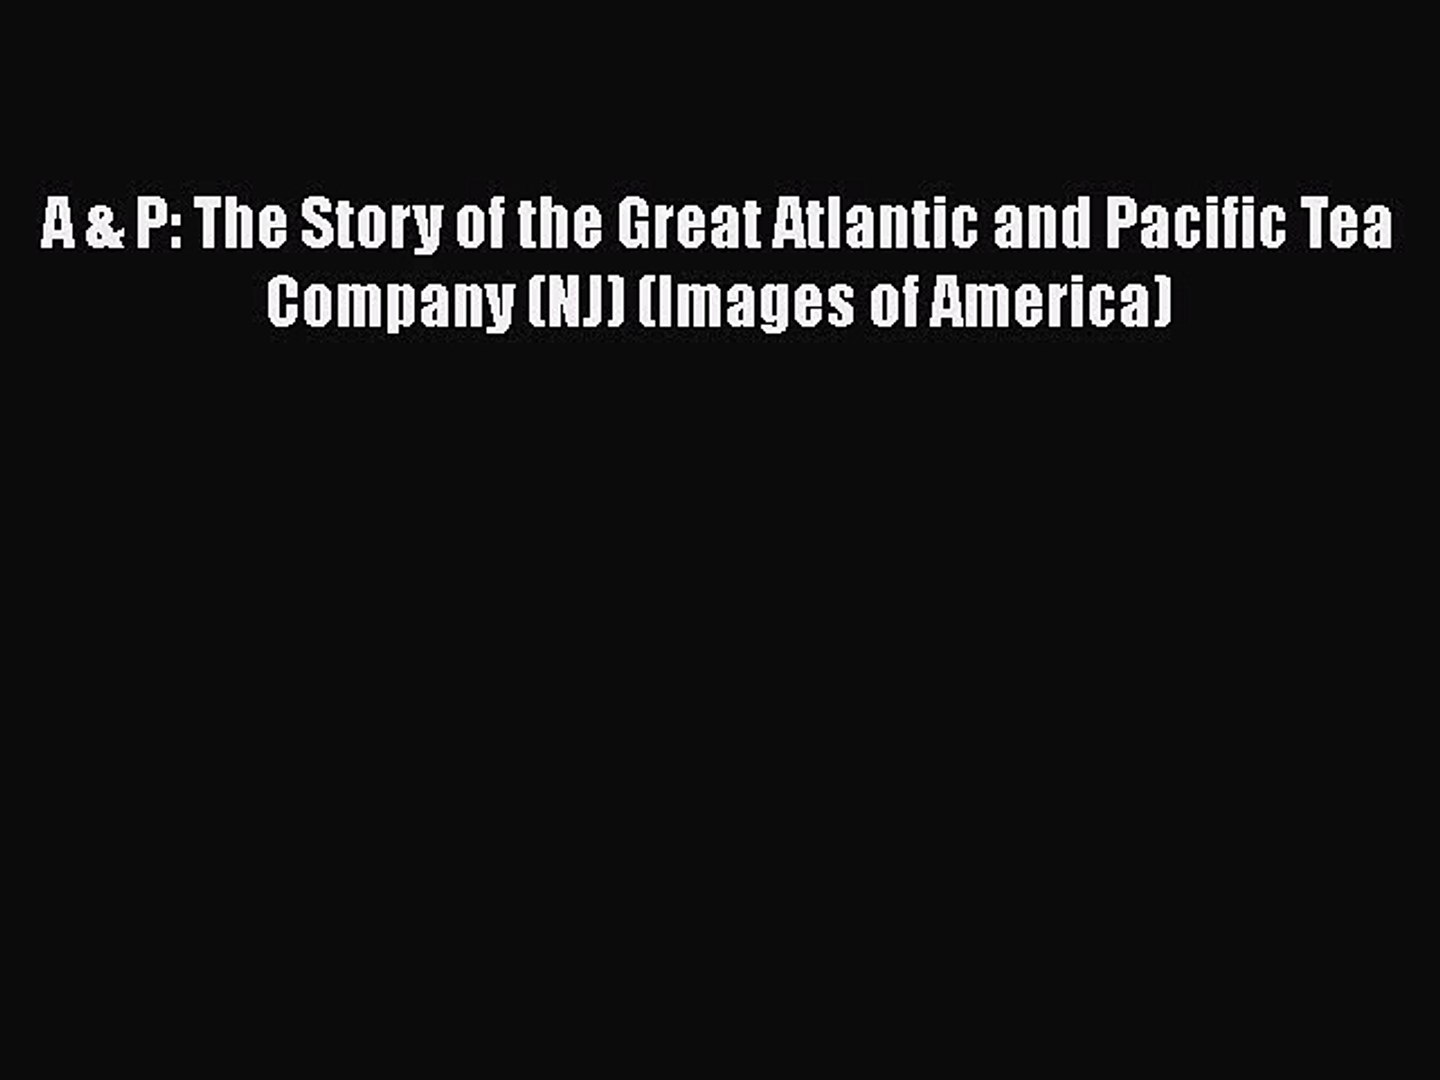 Read A & P: The Story of the Great Atlantic and Pacific Tea Company (NJ) (Images of America)